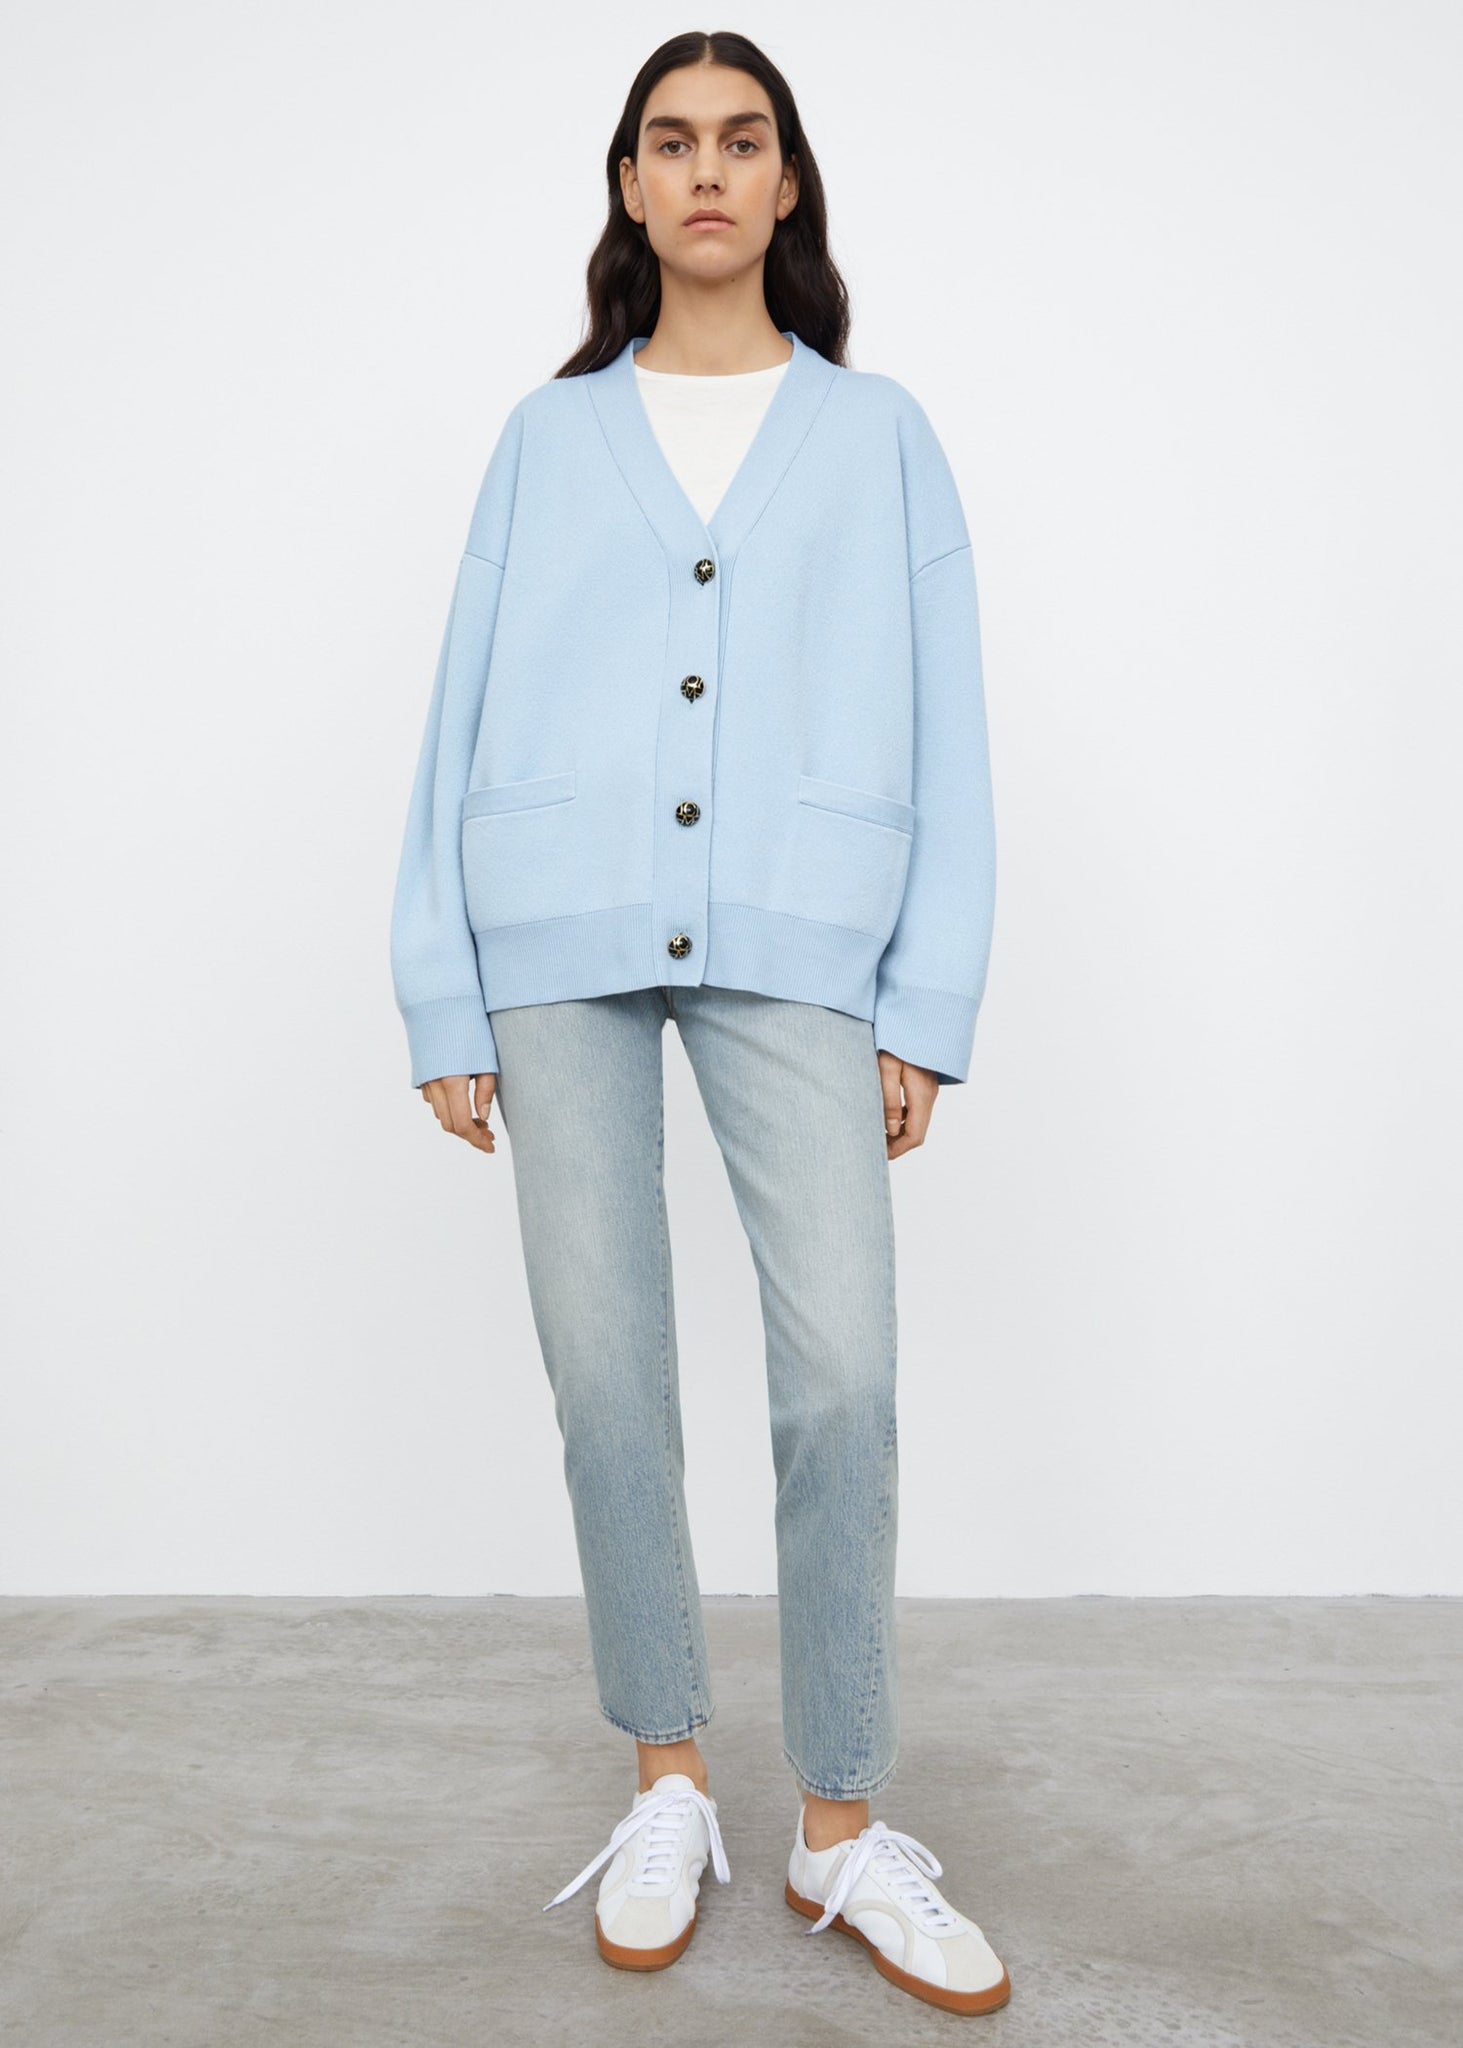 Monogram button cardigan light blue